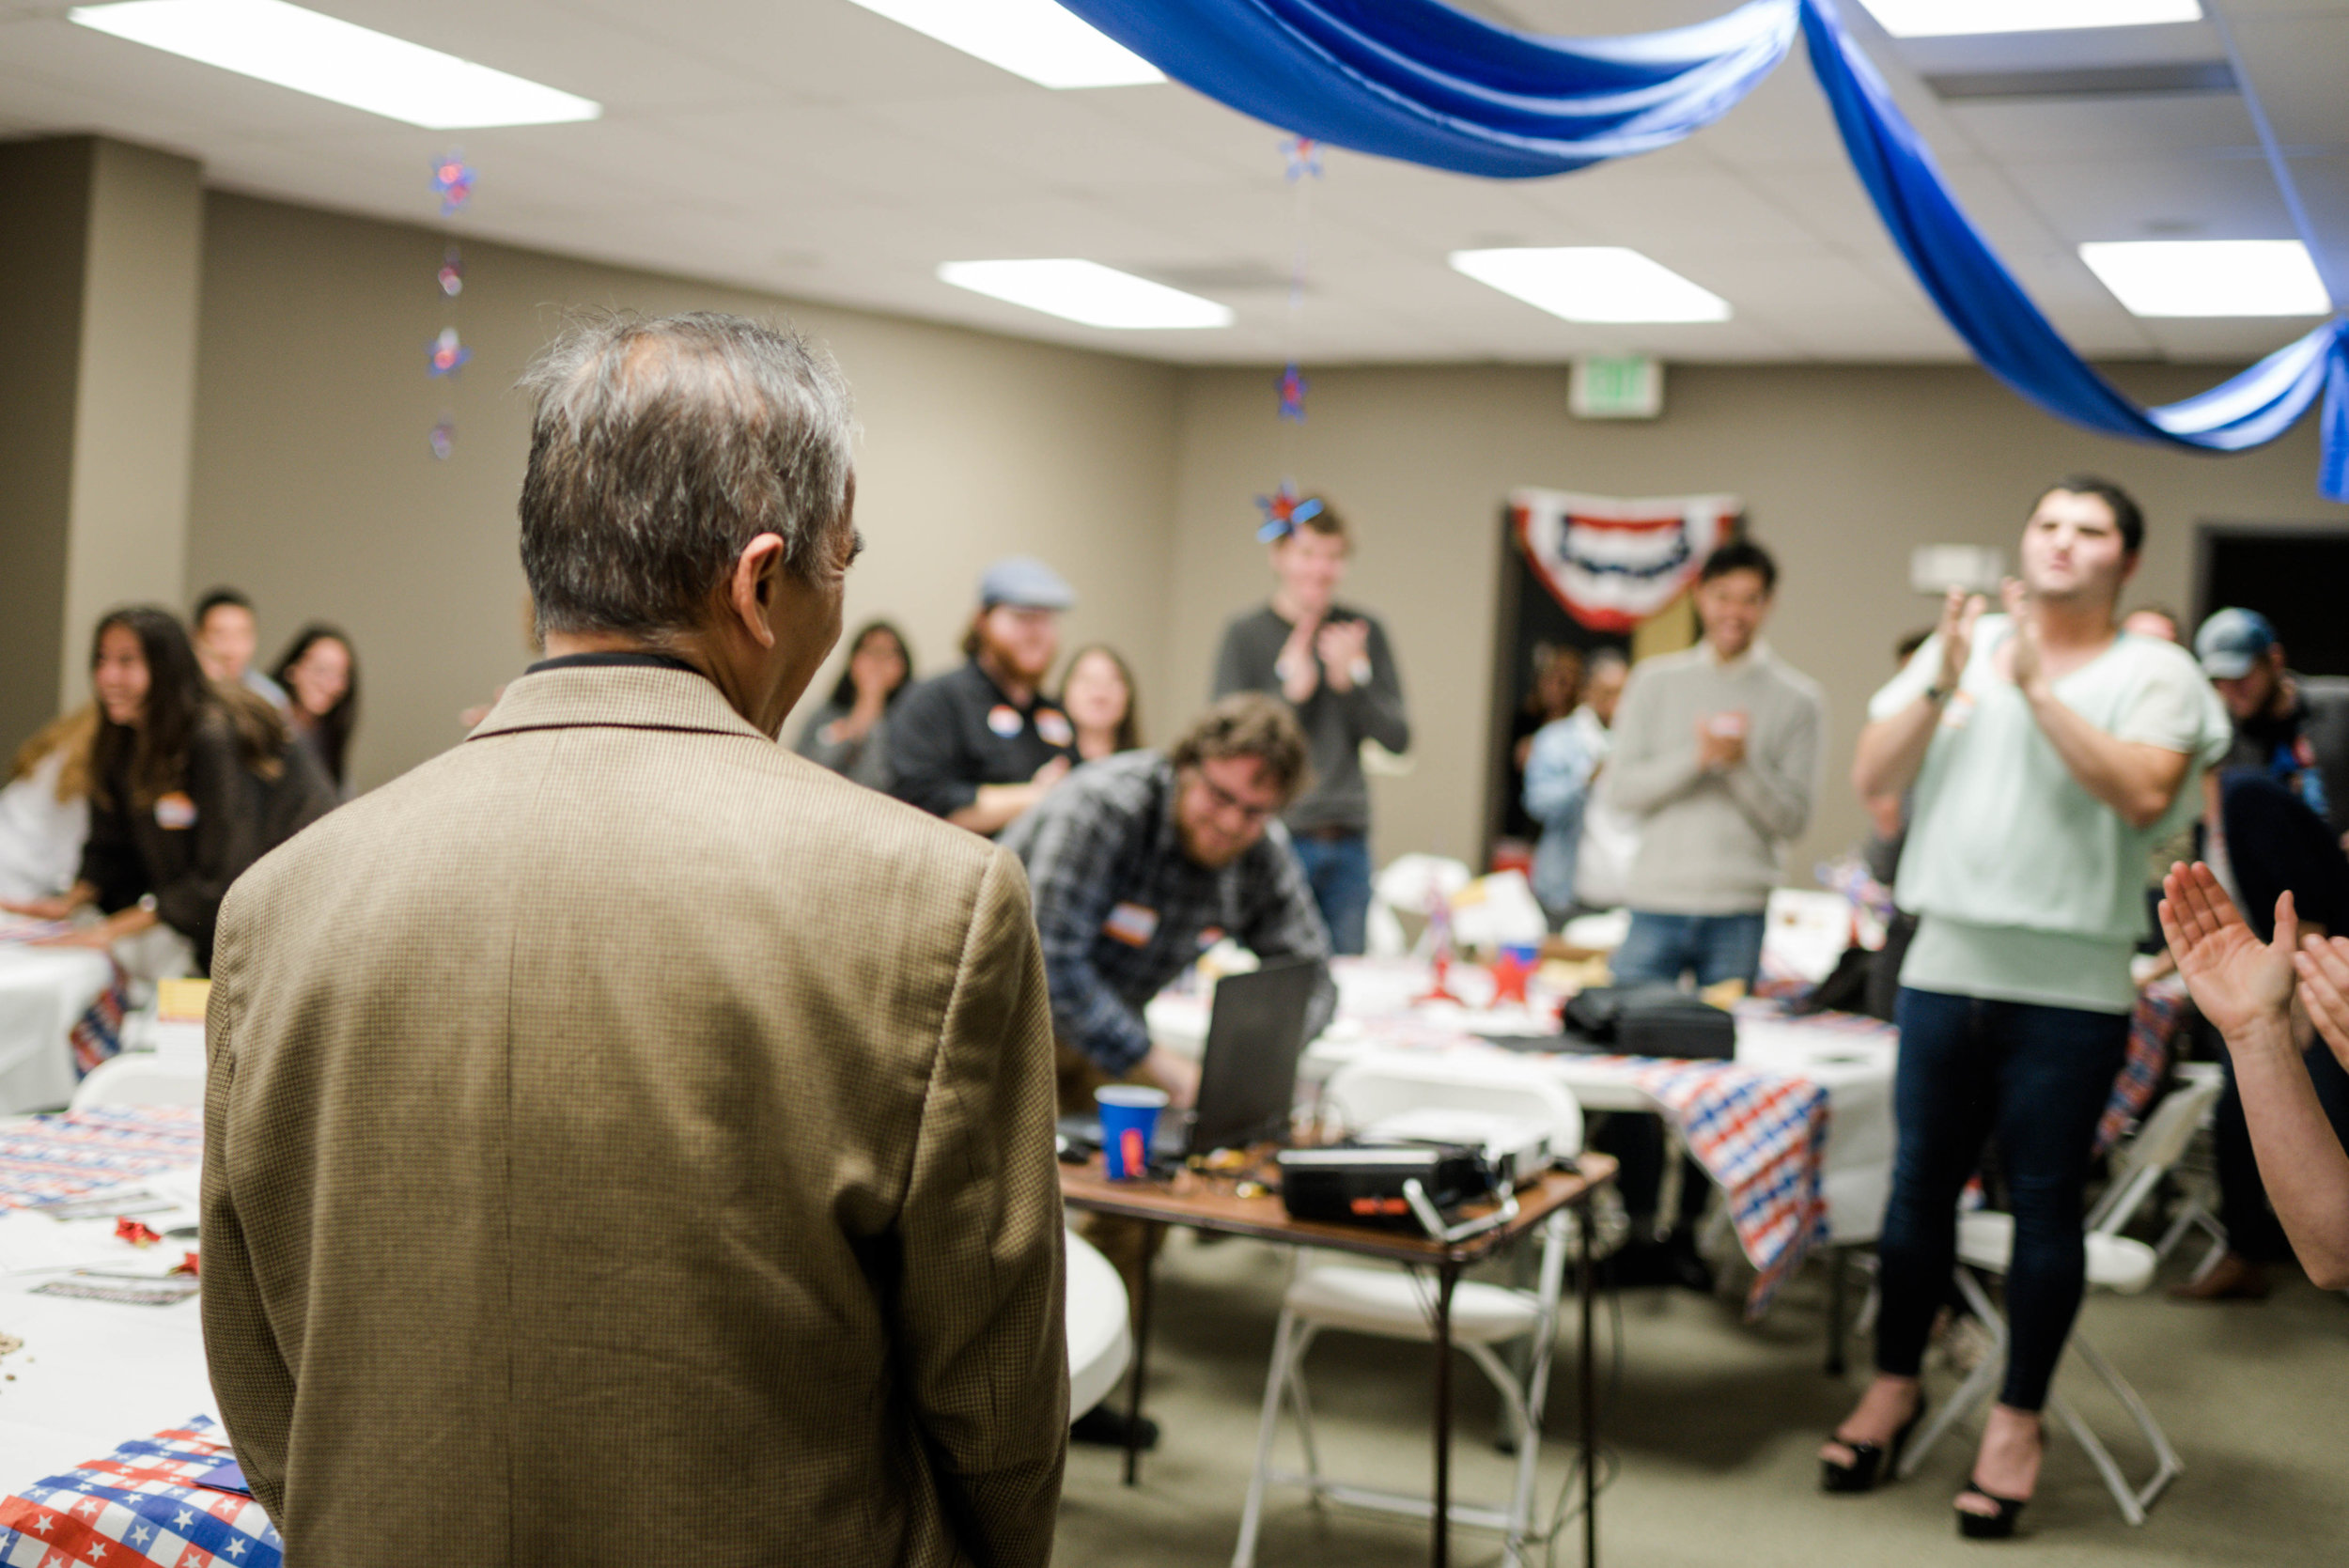 A big round of applause for the leaders of Colorado Immigrants Rights Coalition